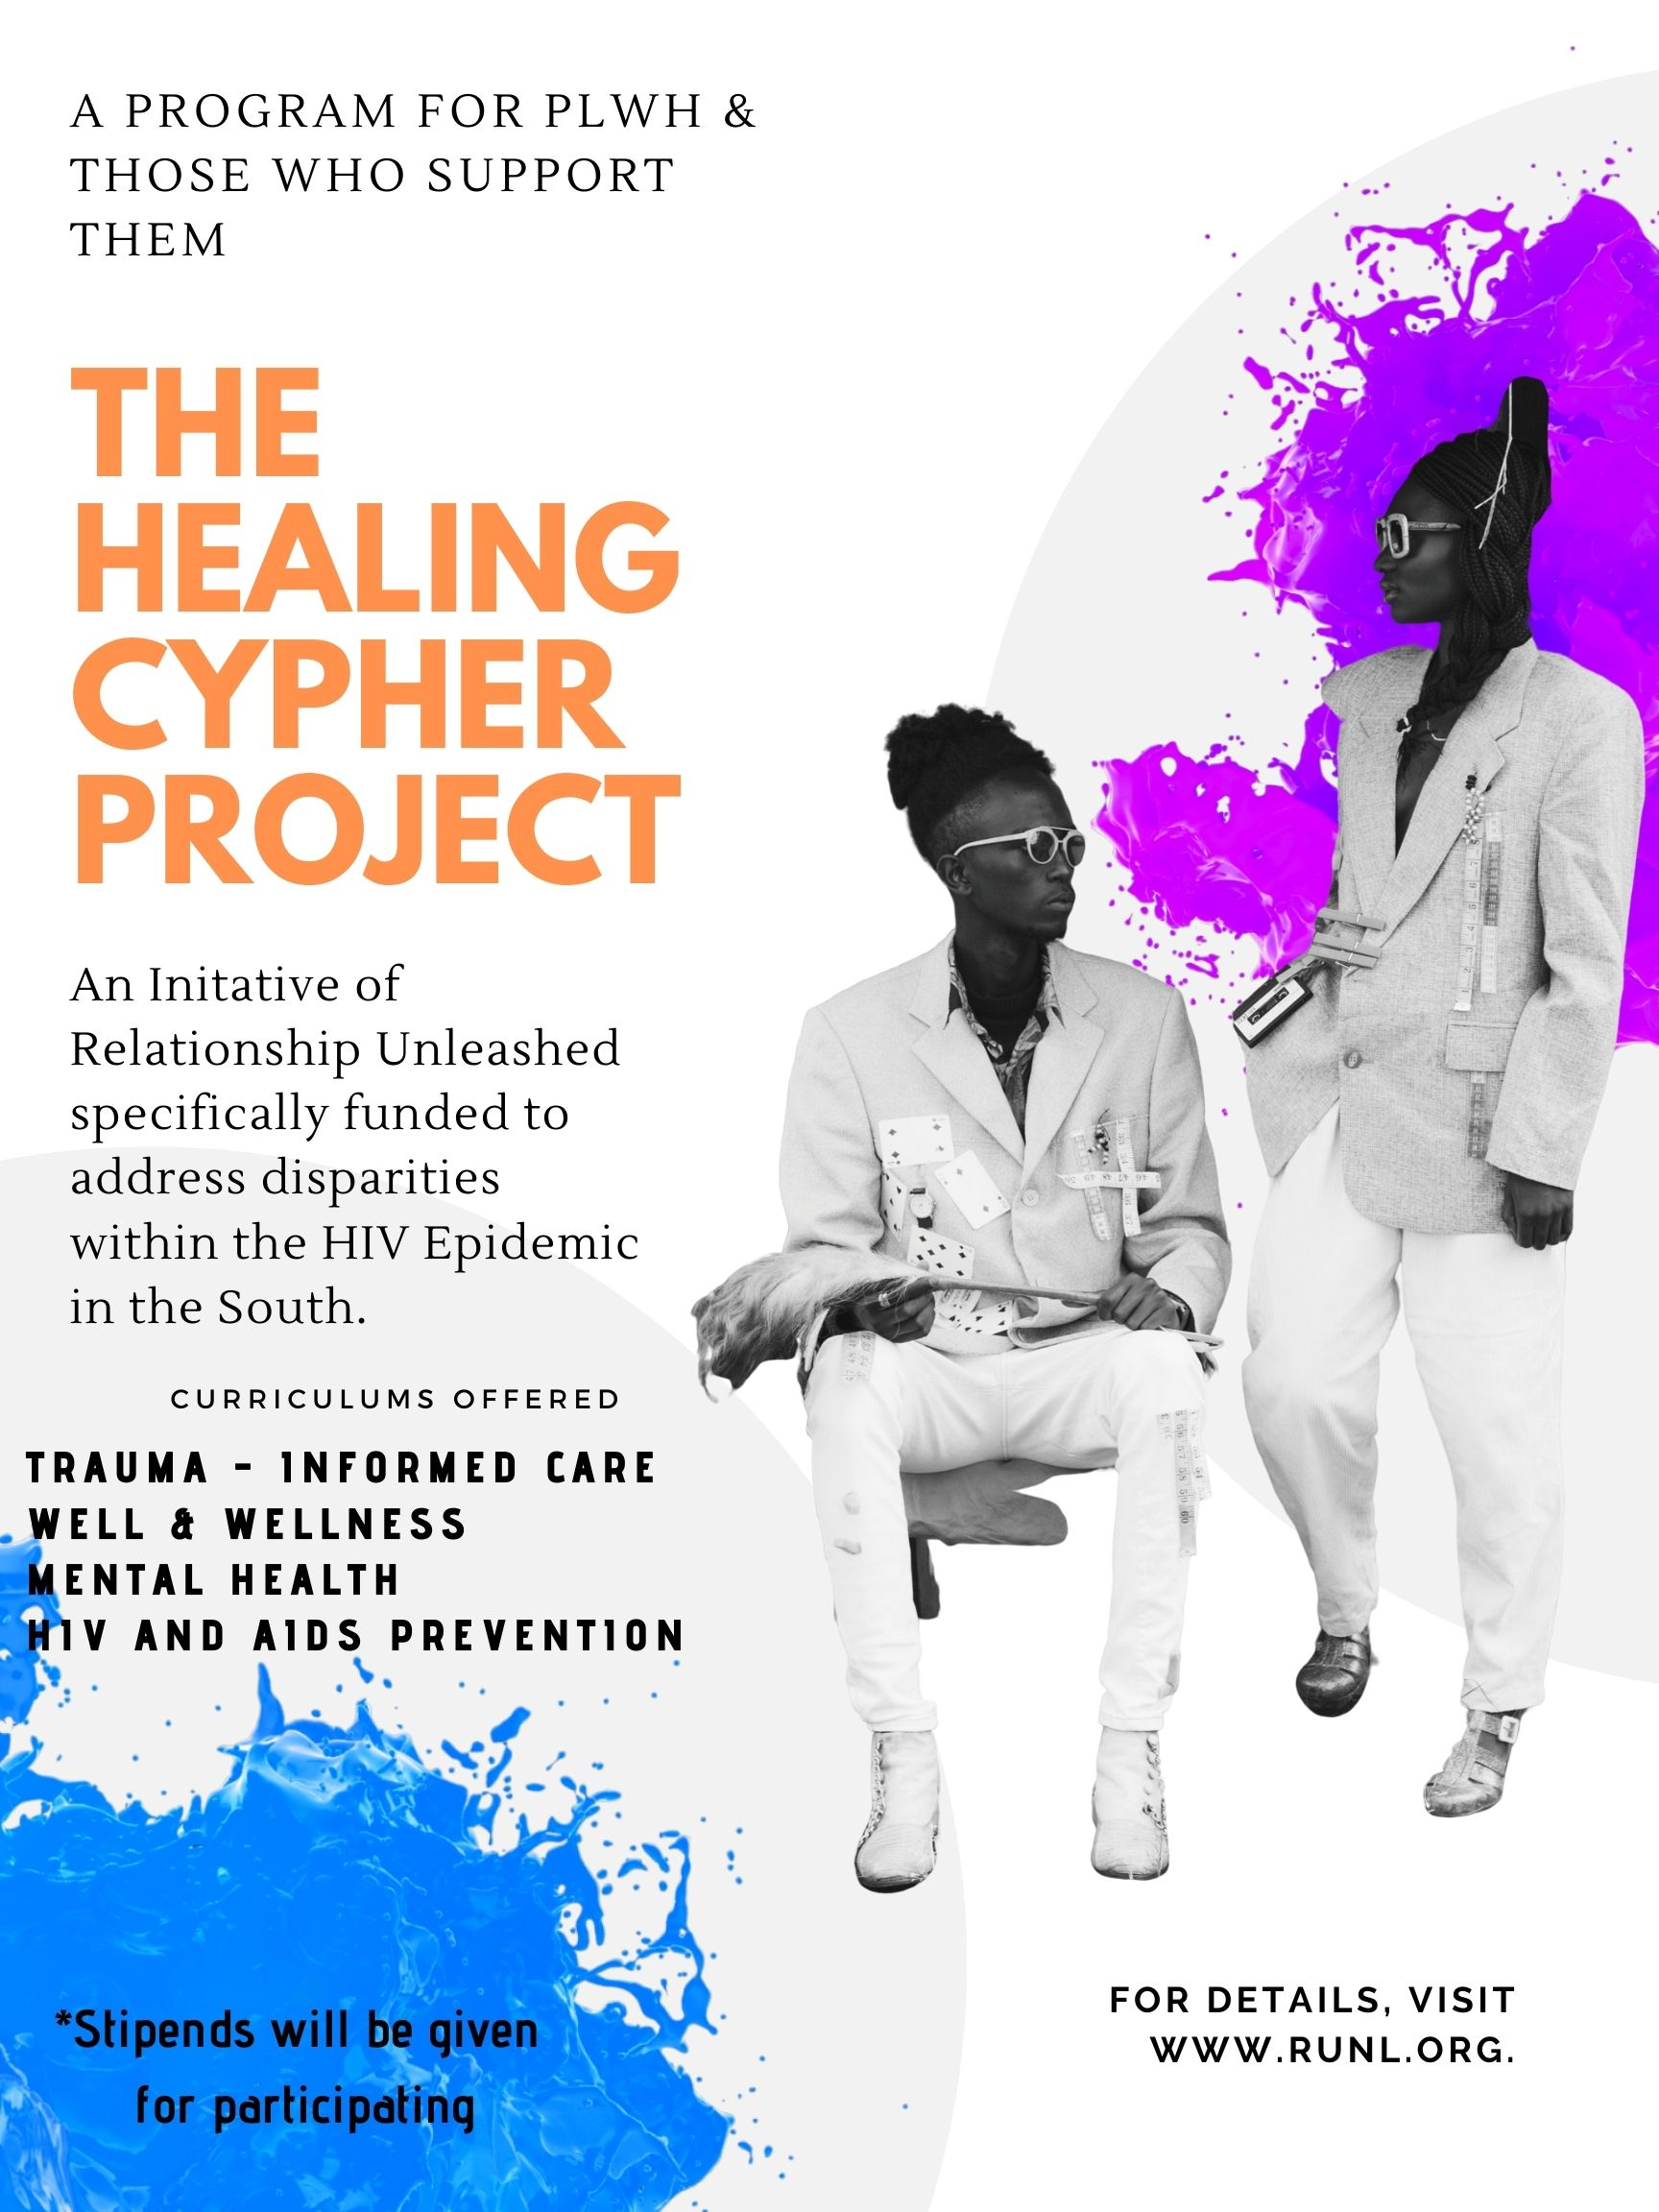 The Healing Cypher Project